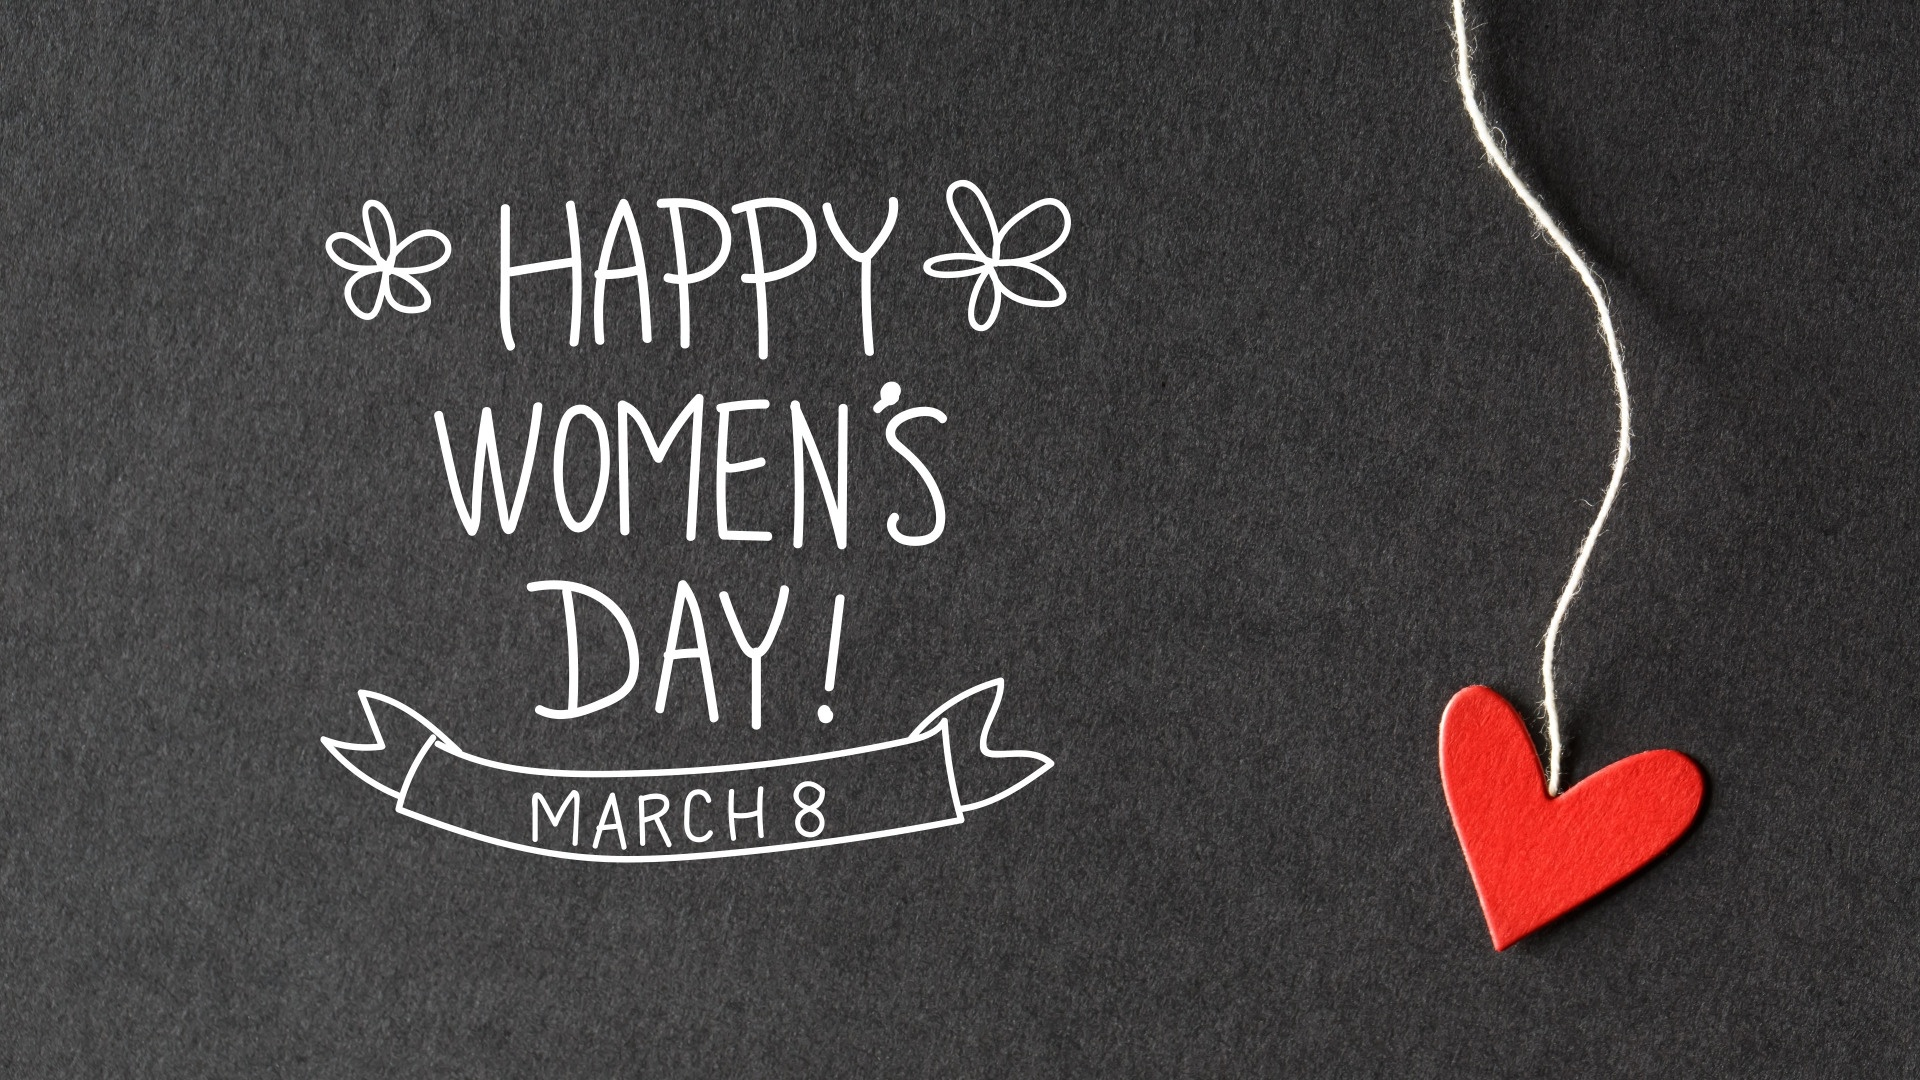 Happy Women's Day wallpaper for computer